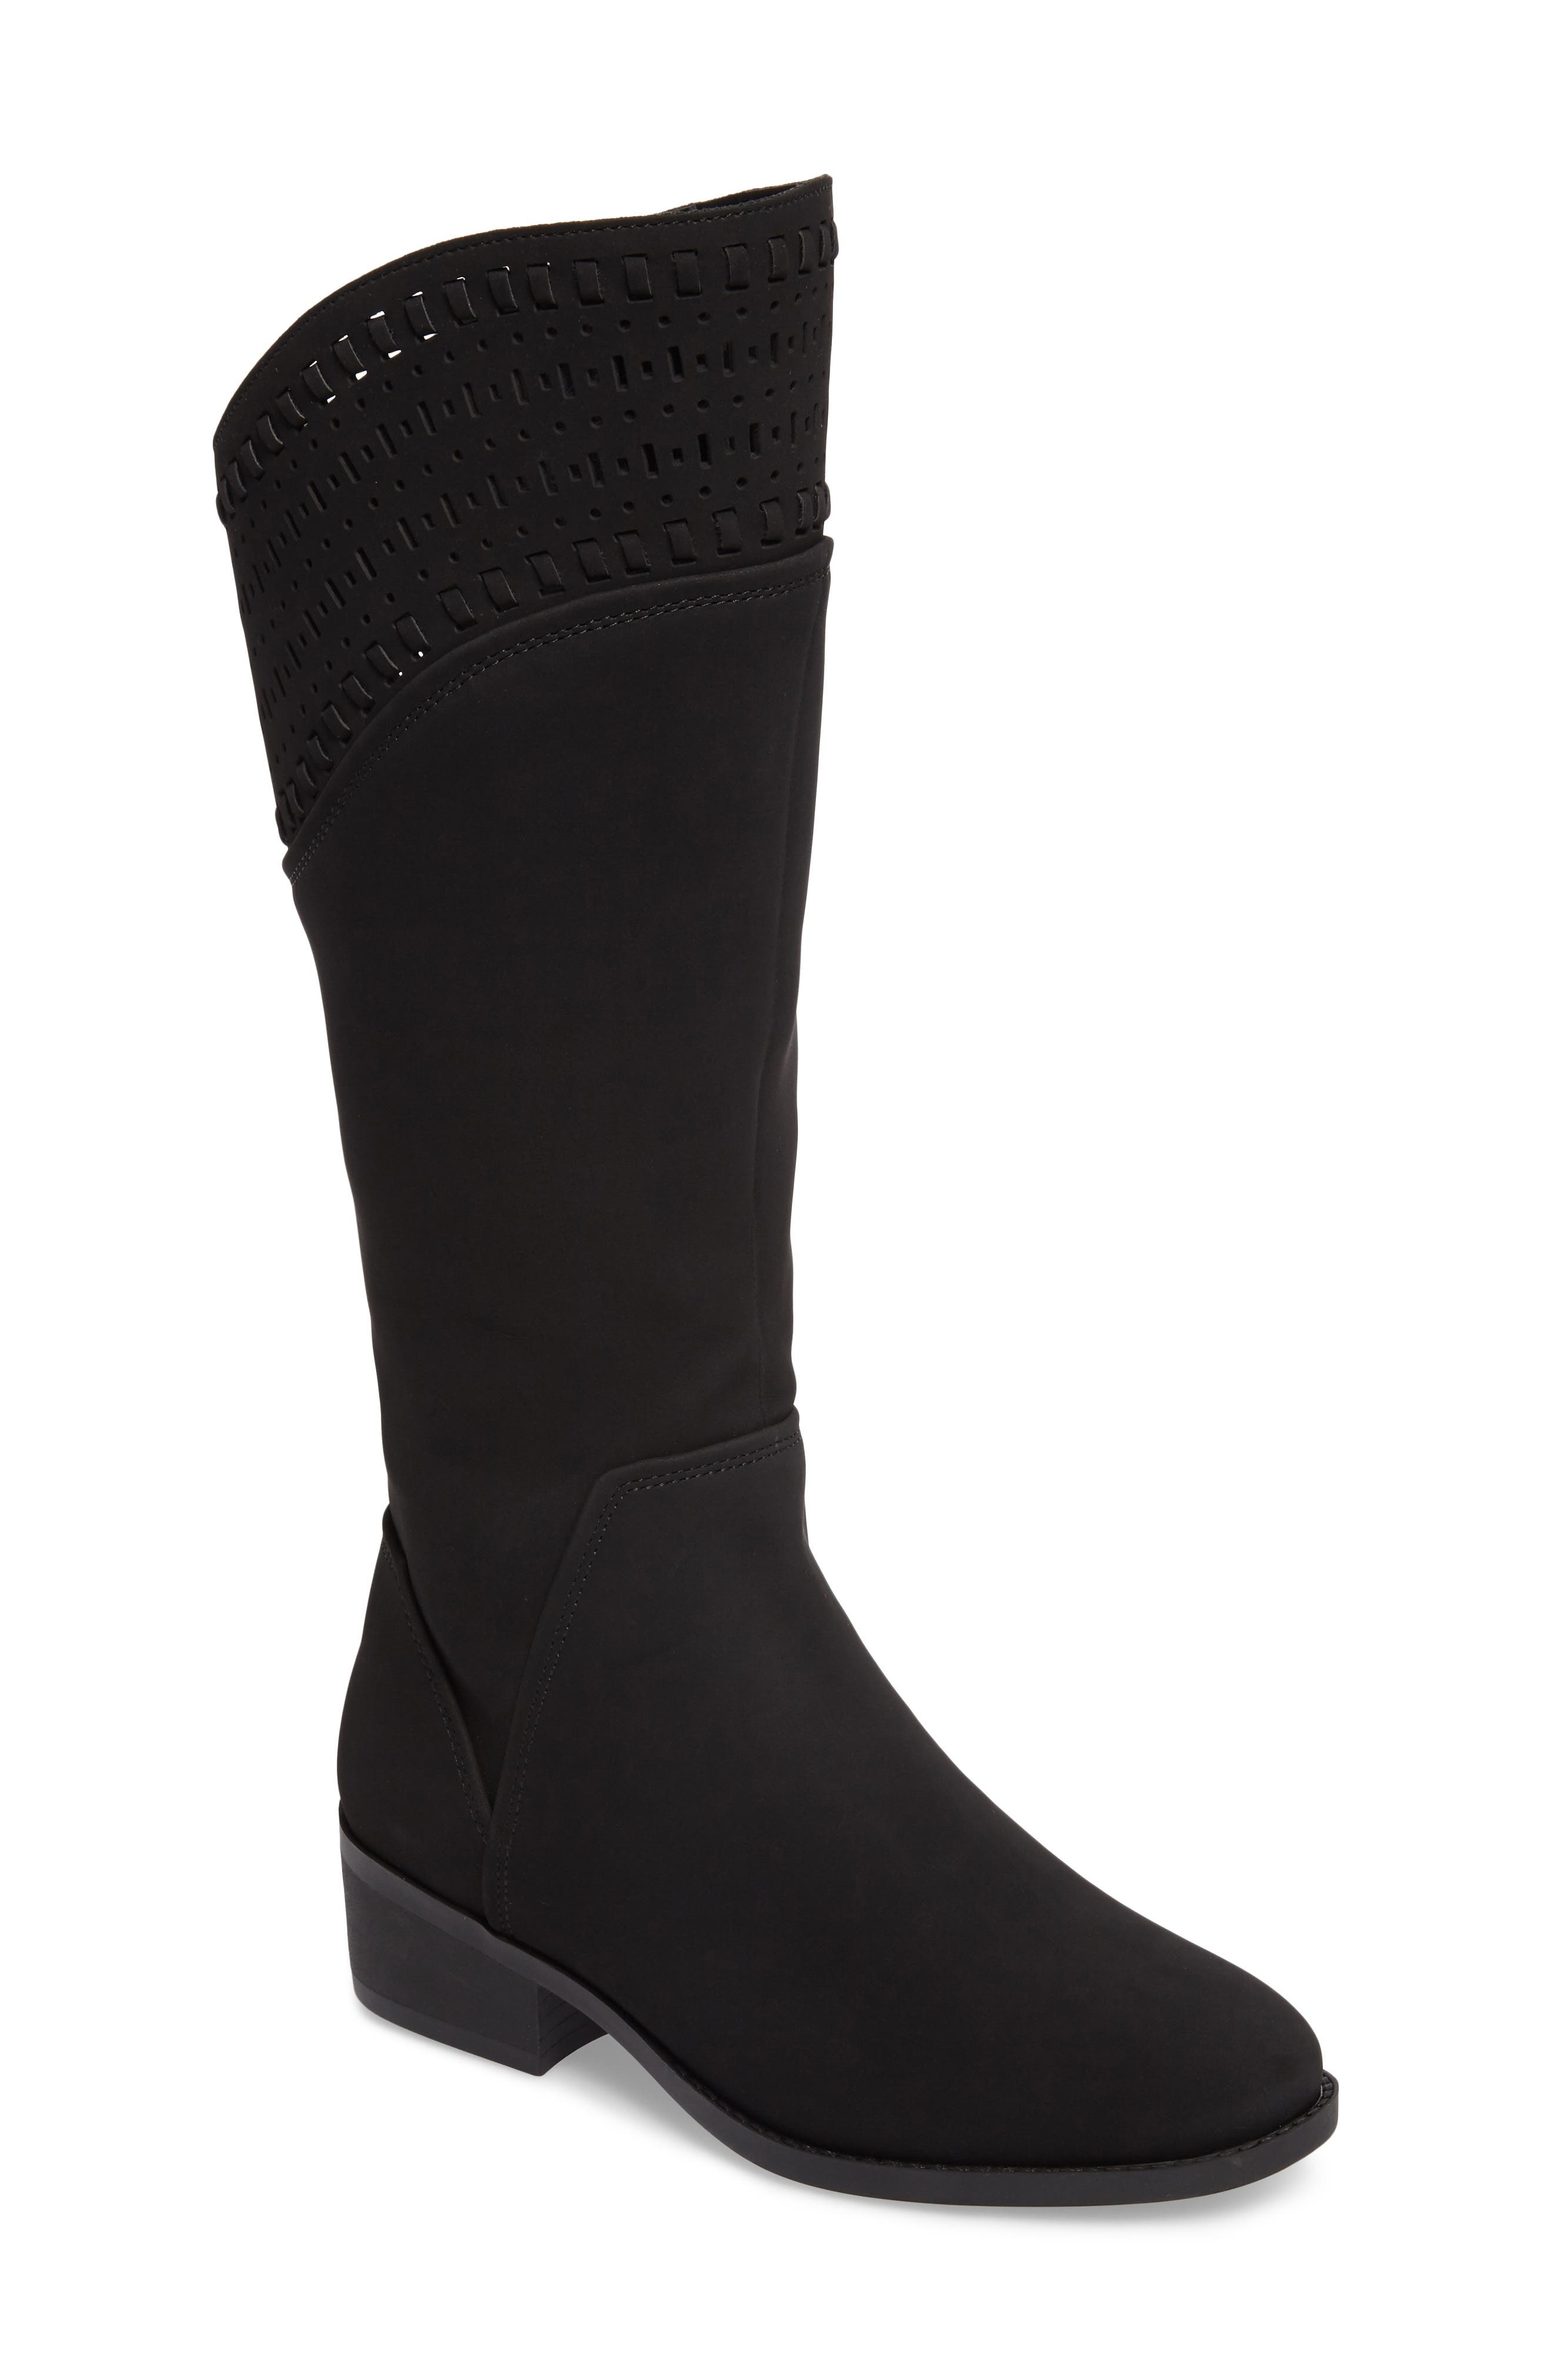 Blysse Woven Tall Boot,                         Main,                         color, Black Suede